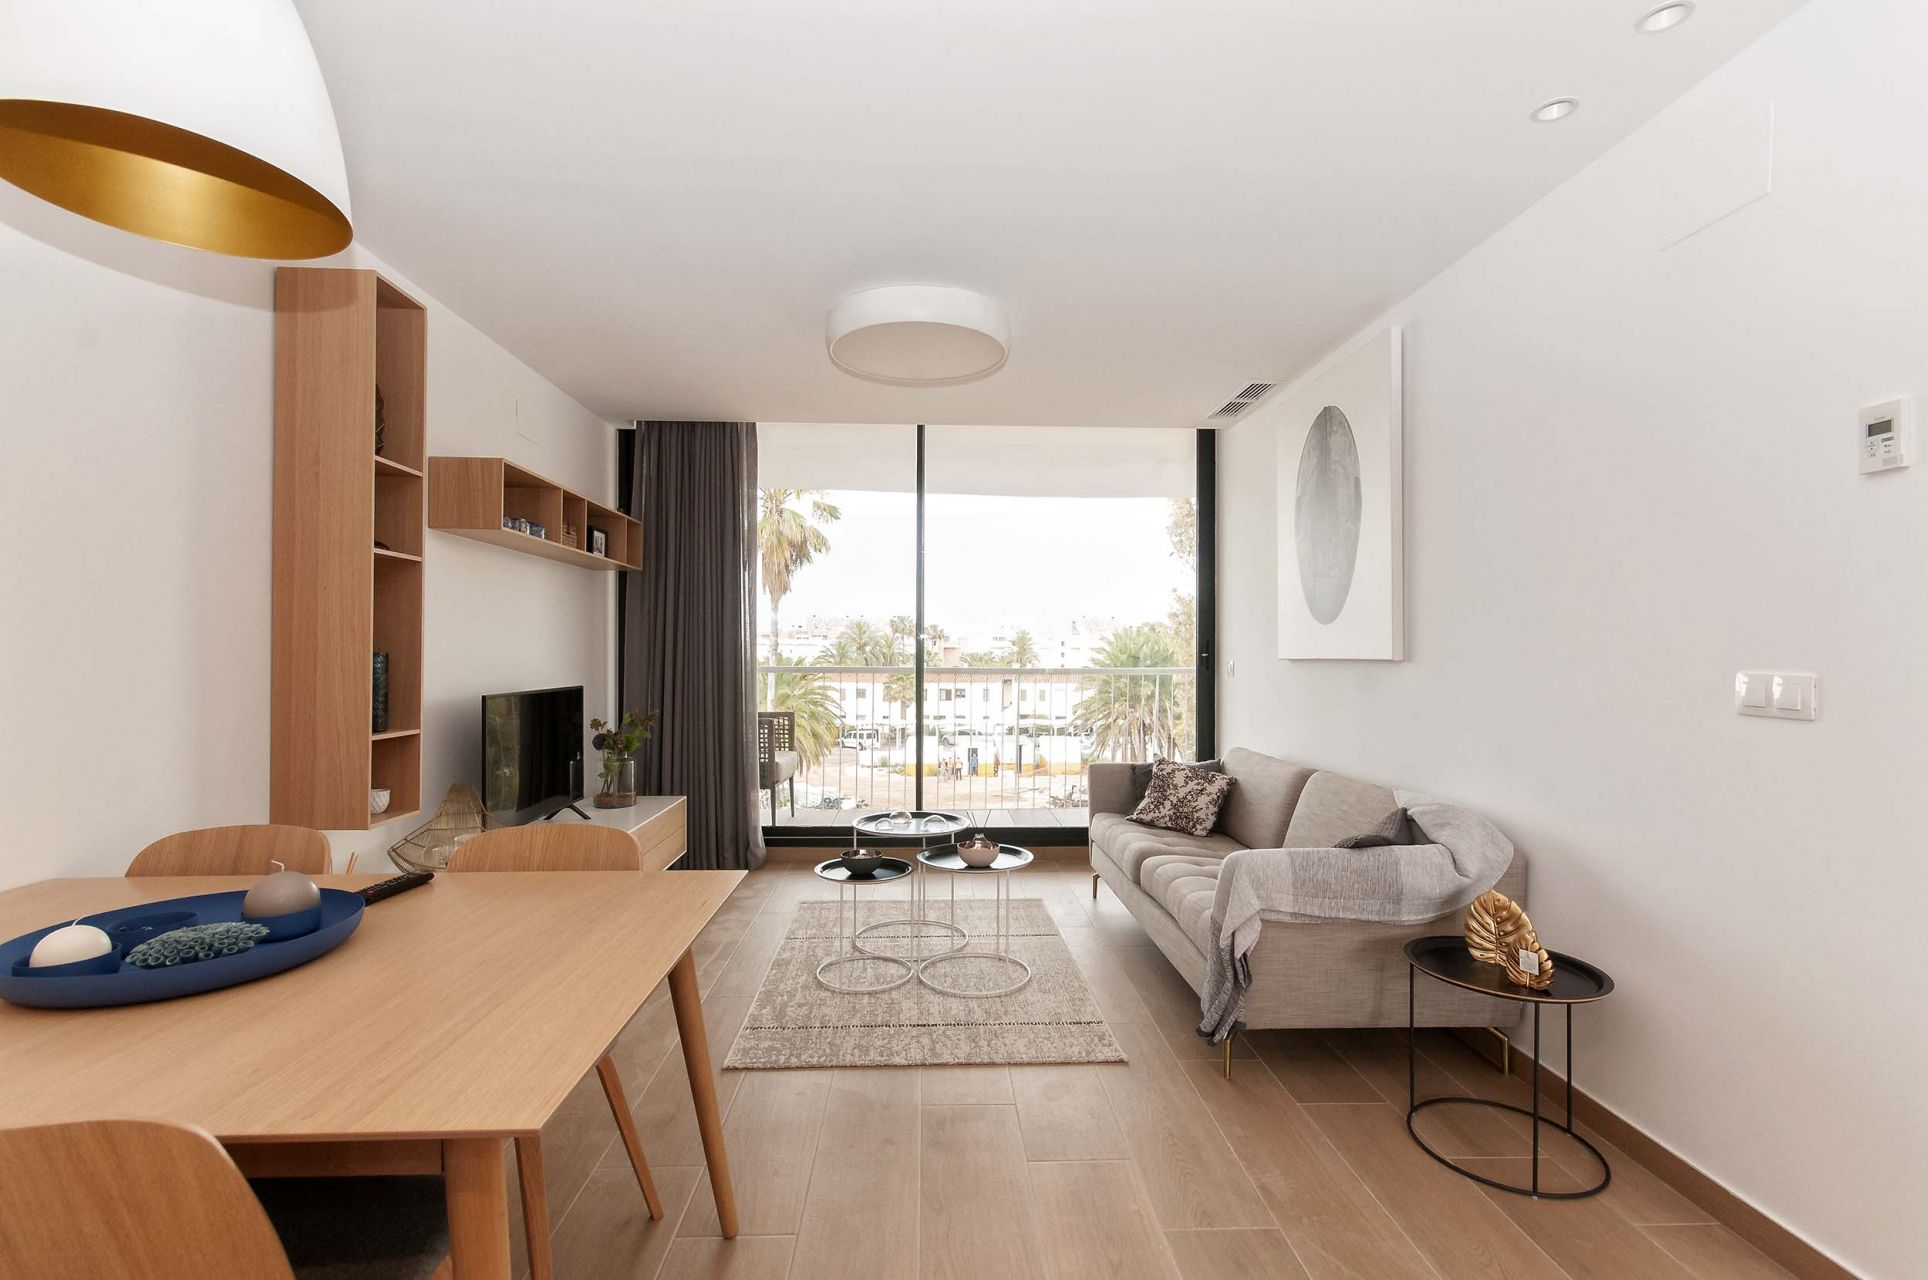 Denia Beach - 1, 2 and 3 bedroom apartments with terrace overlooking the sea or with views over the Montgó mountain, at the beach of La Almadraba beach 27